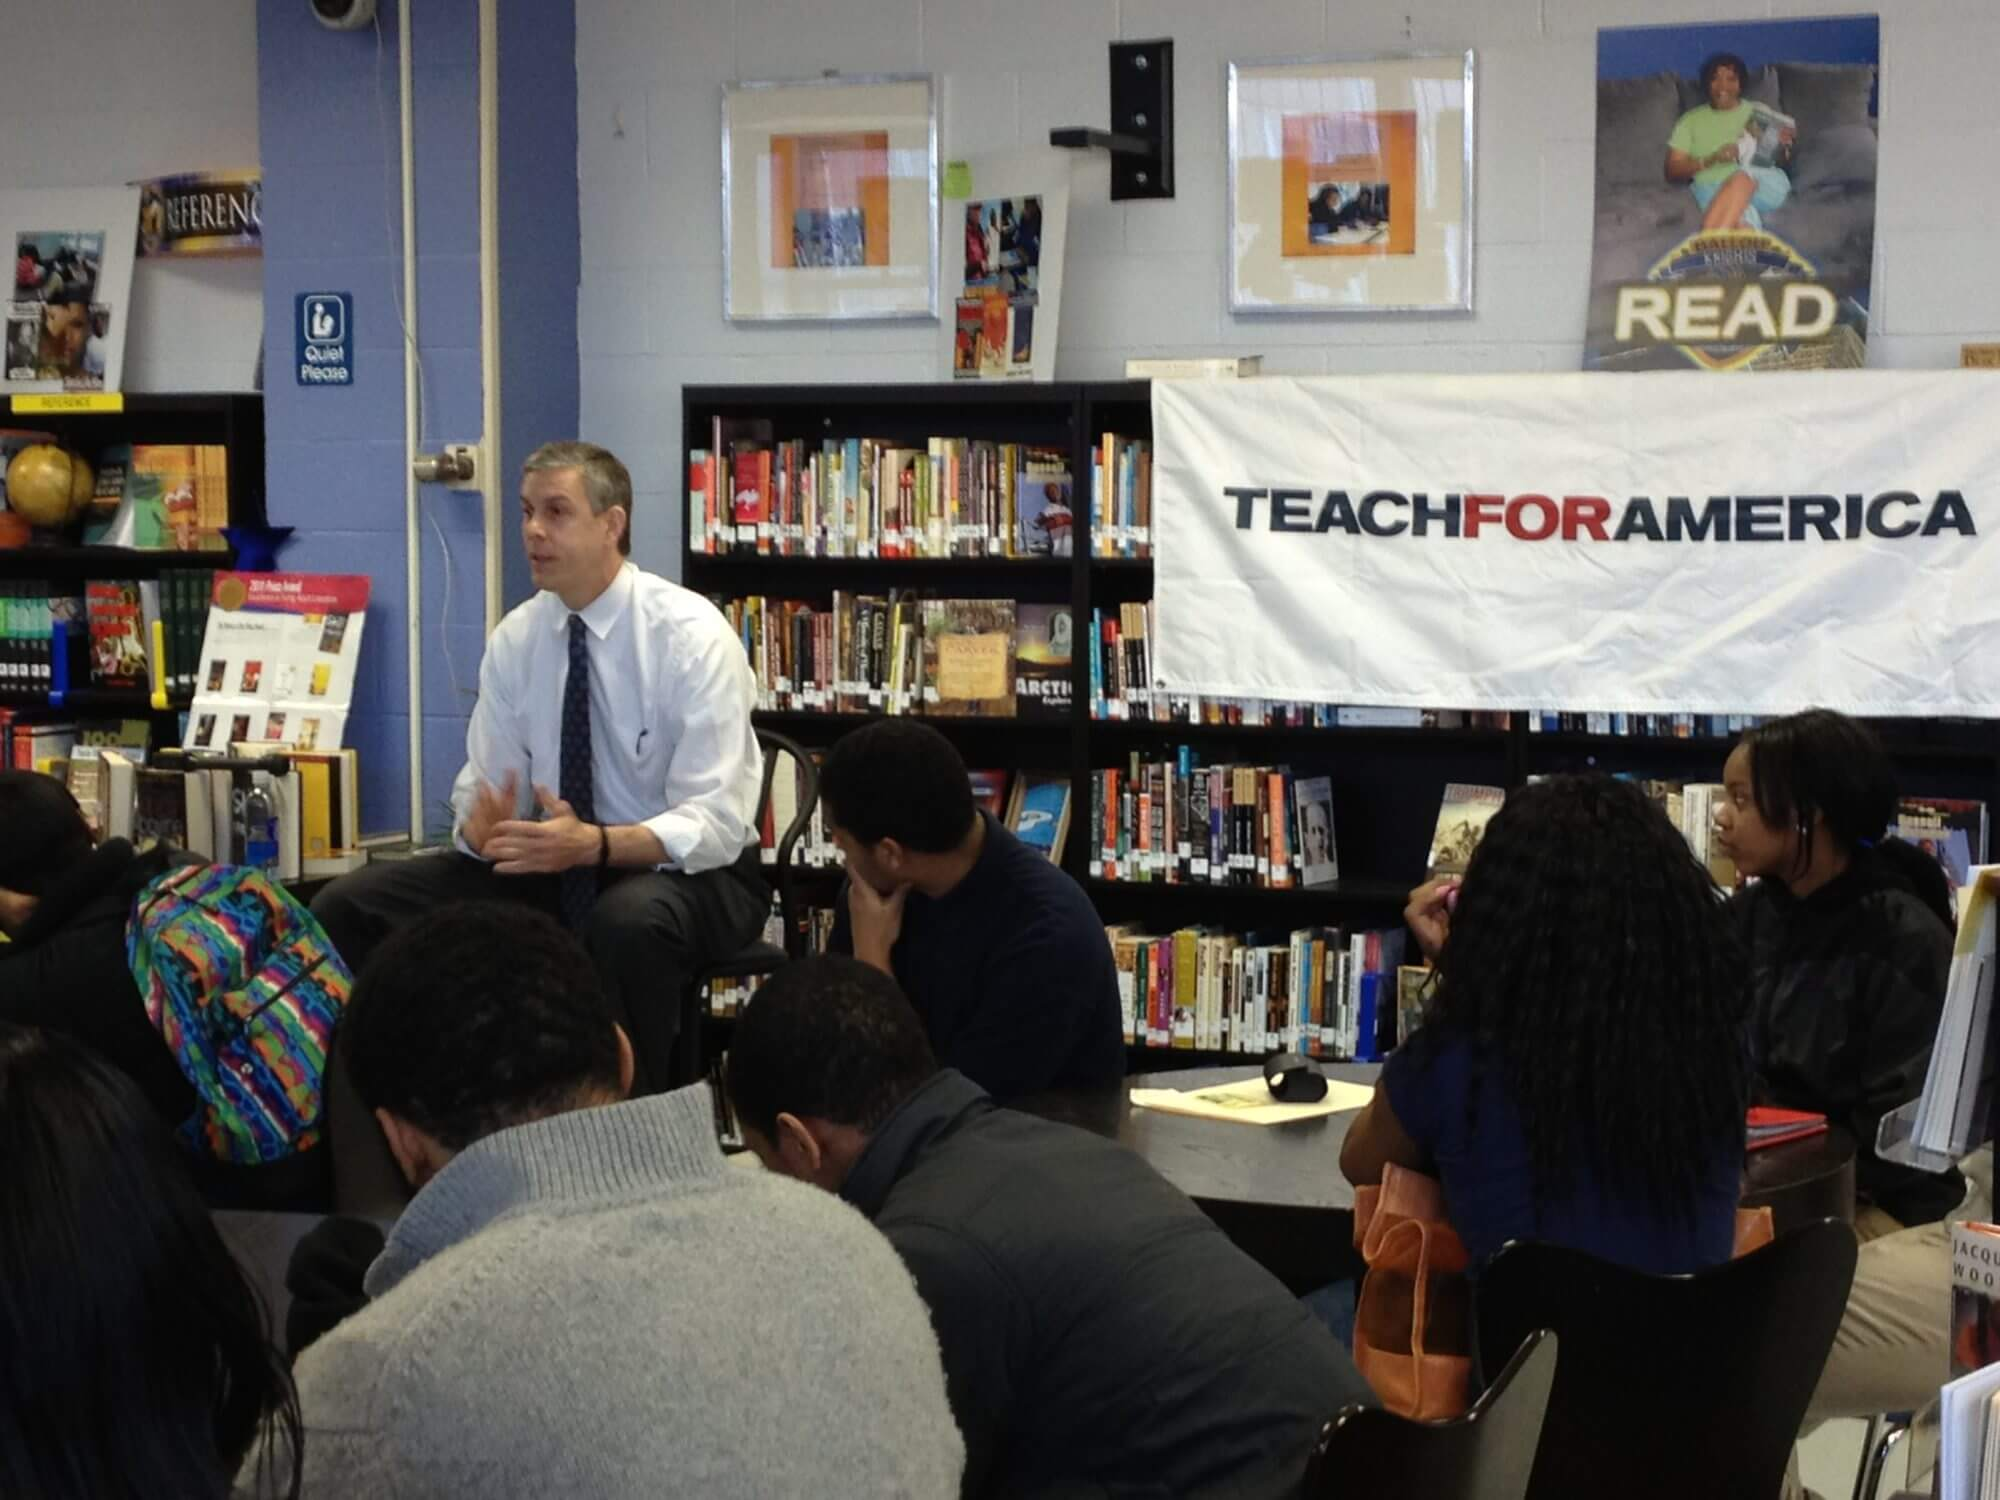 Ed Secretary Duncan chats with Washington high school students at Teach For America event